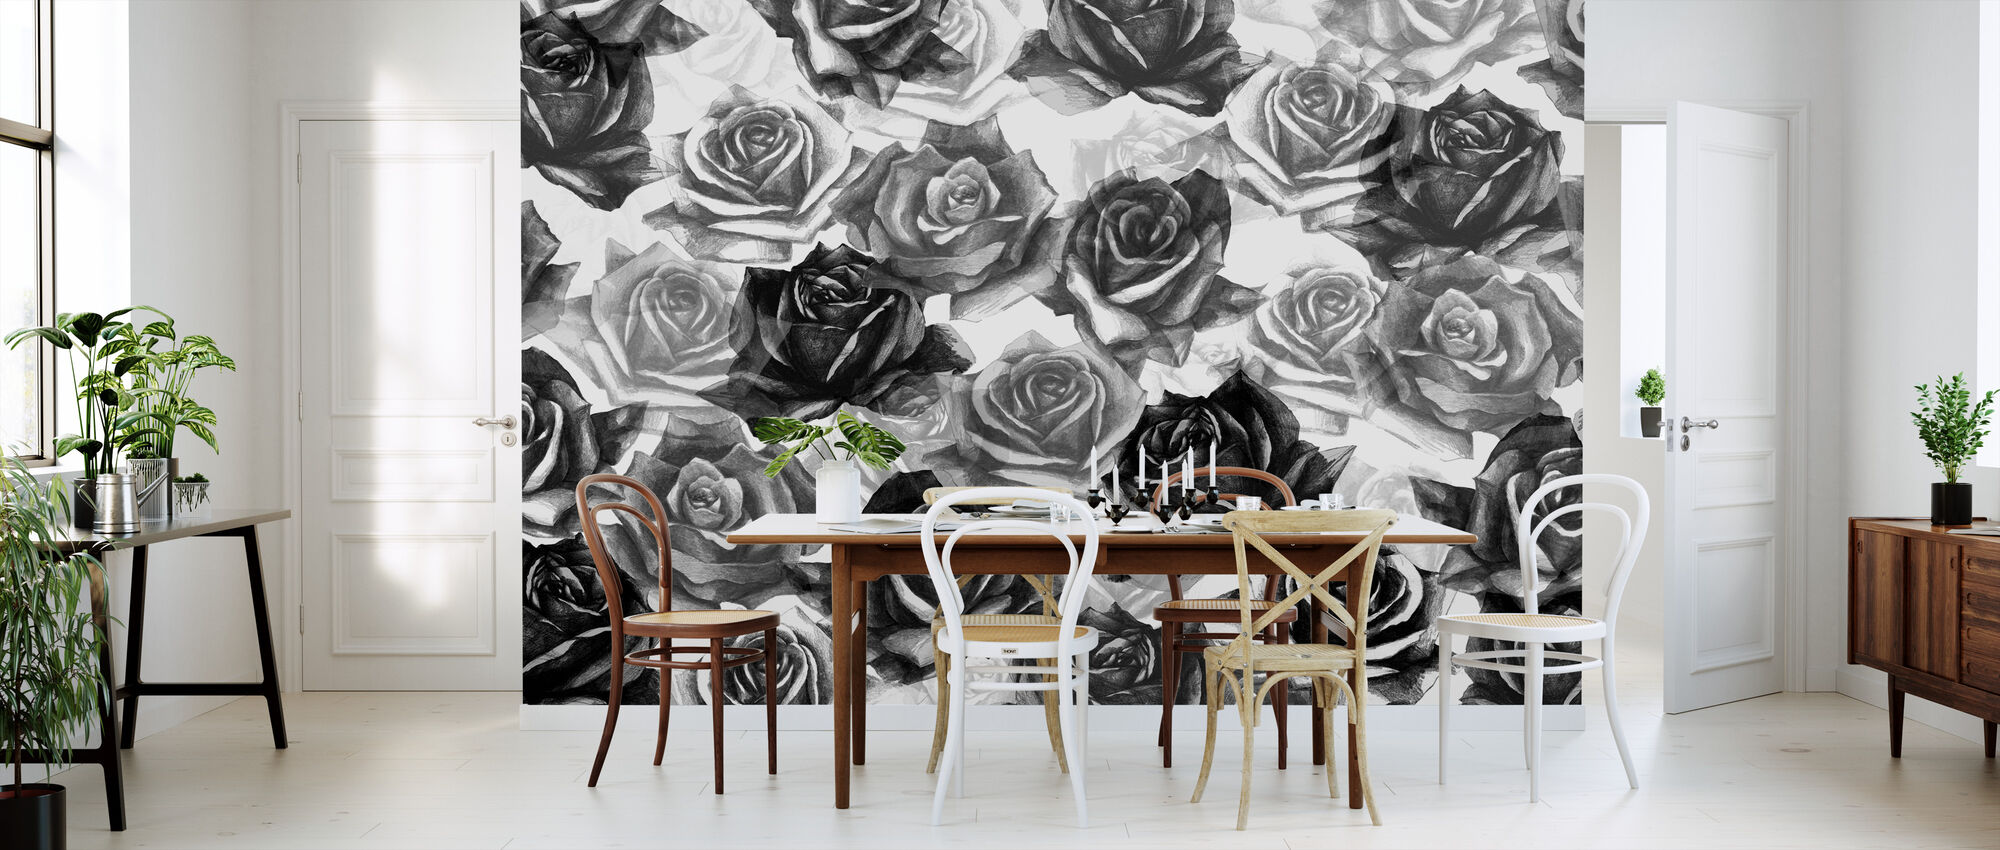 My Black Roses - Wallpaper - Kitchen